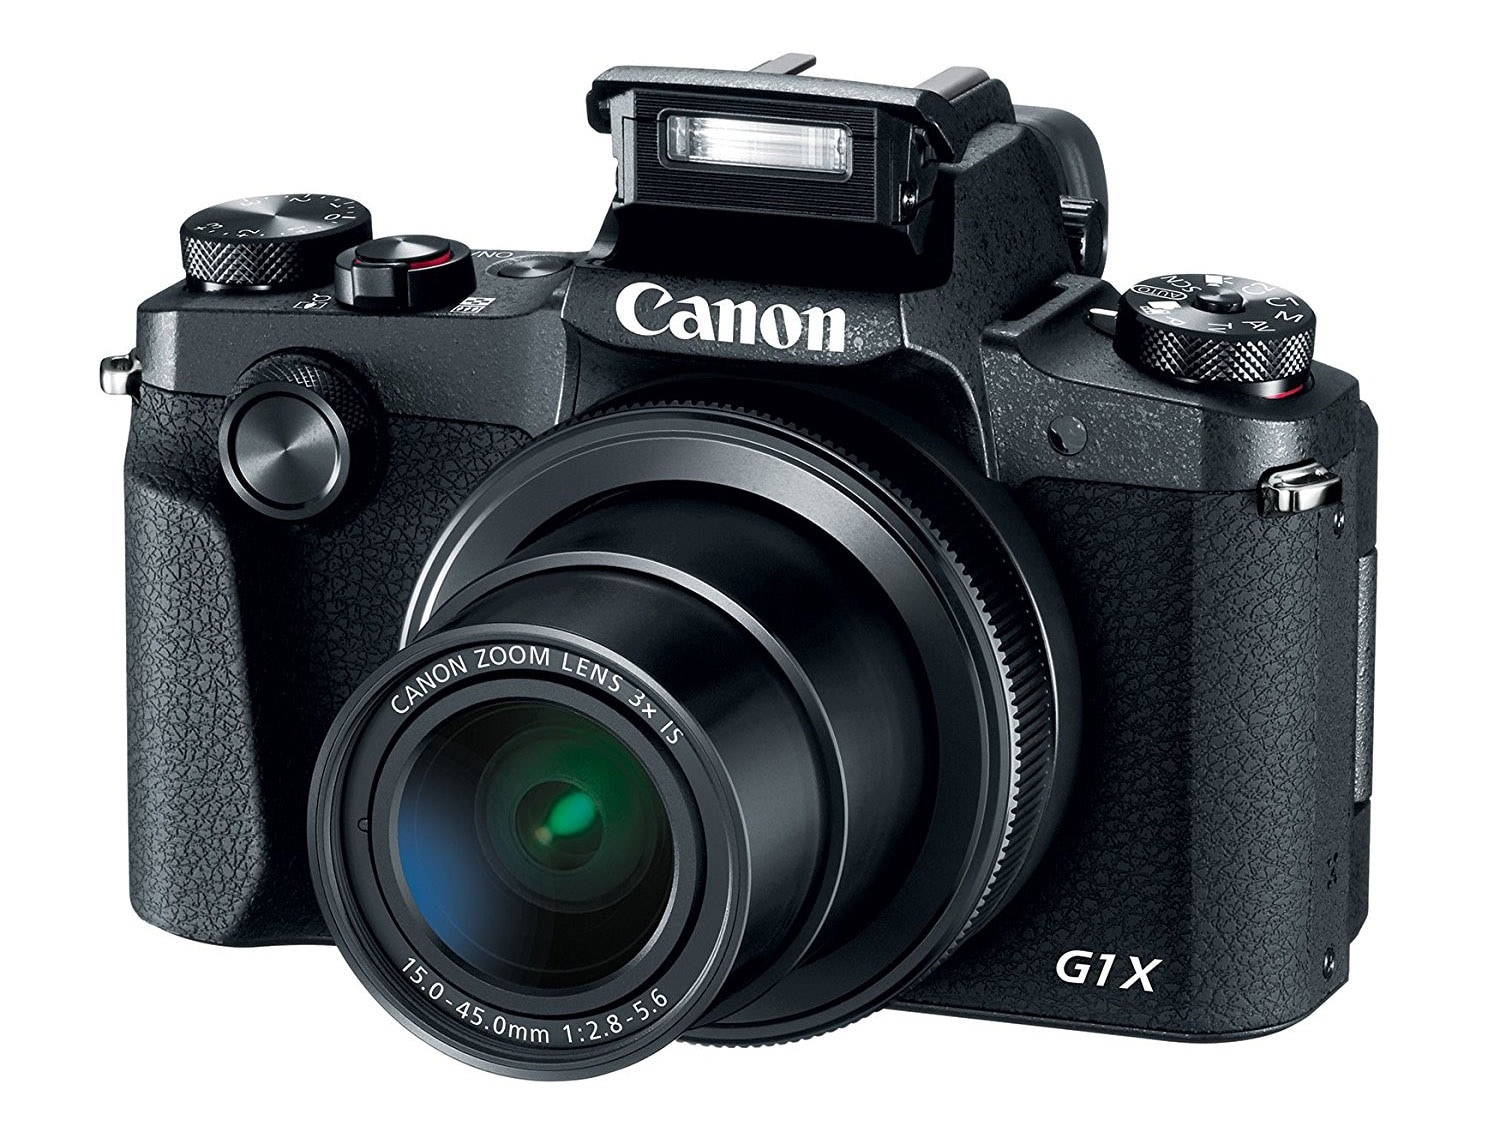 Canon PowerShot G1 X Mark III With APS-C Sensor, Dual Pixel Autofocus Launched